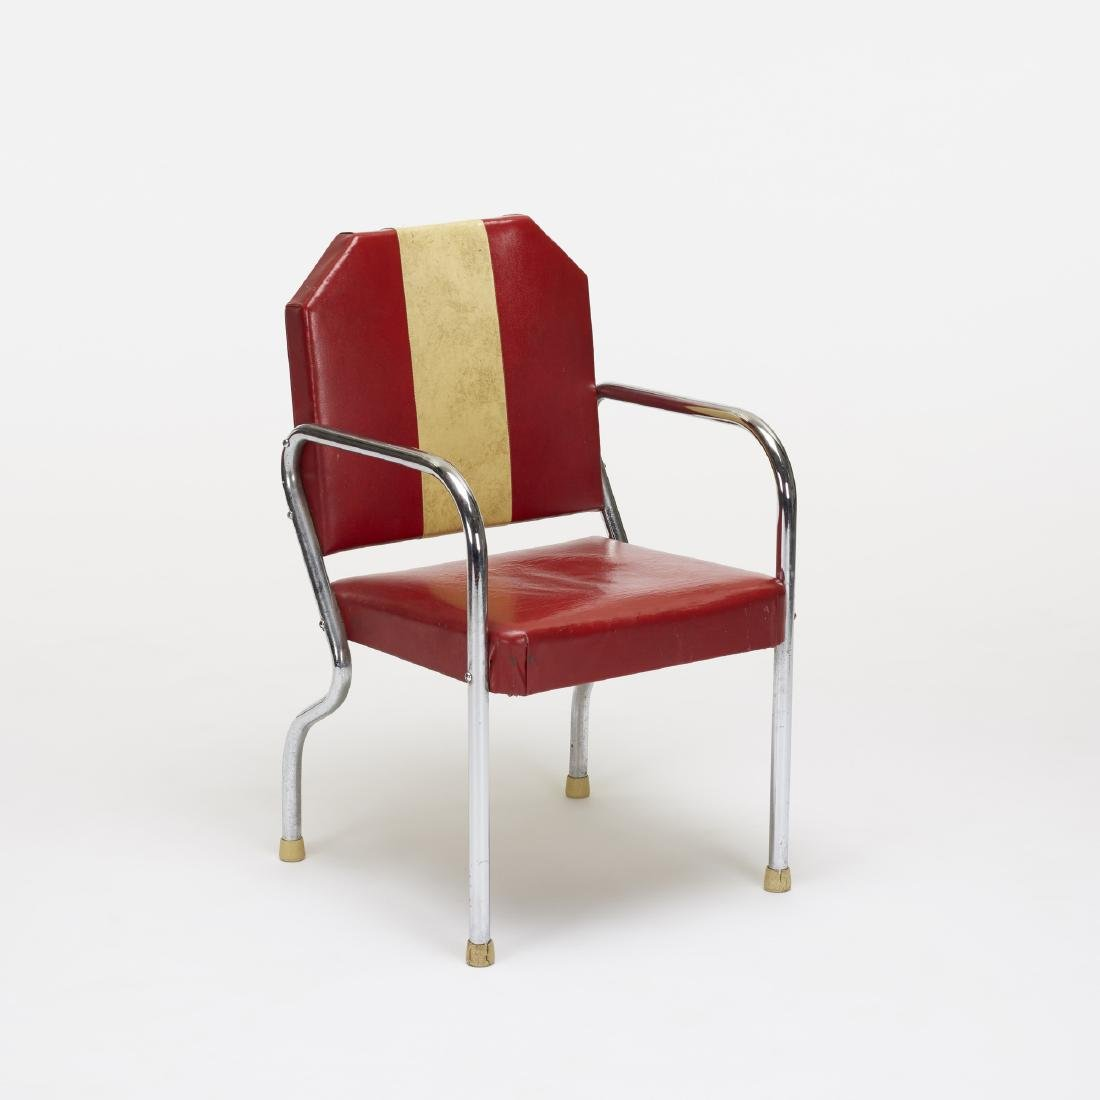 American, chairs from the studio of Basquiat - 3